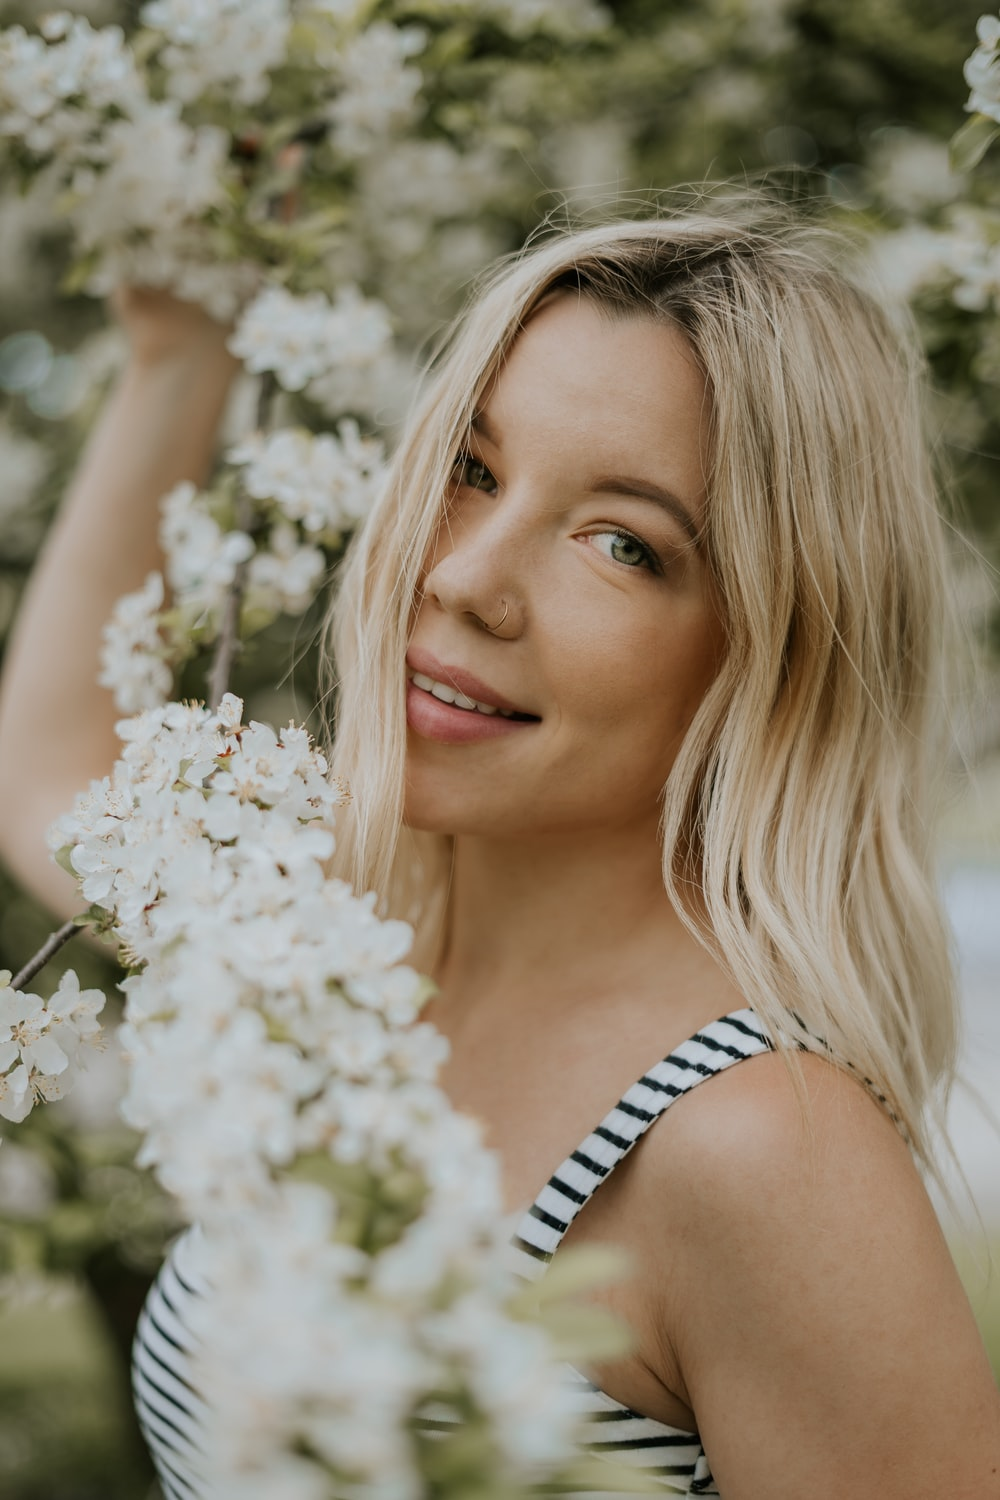 smiling woman standing near white cluster flowers during daytime